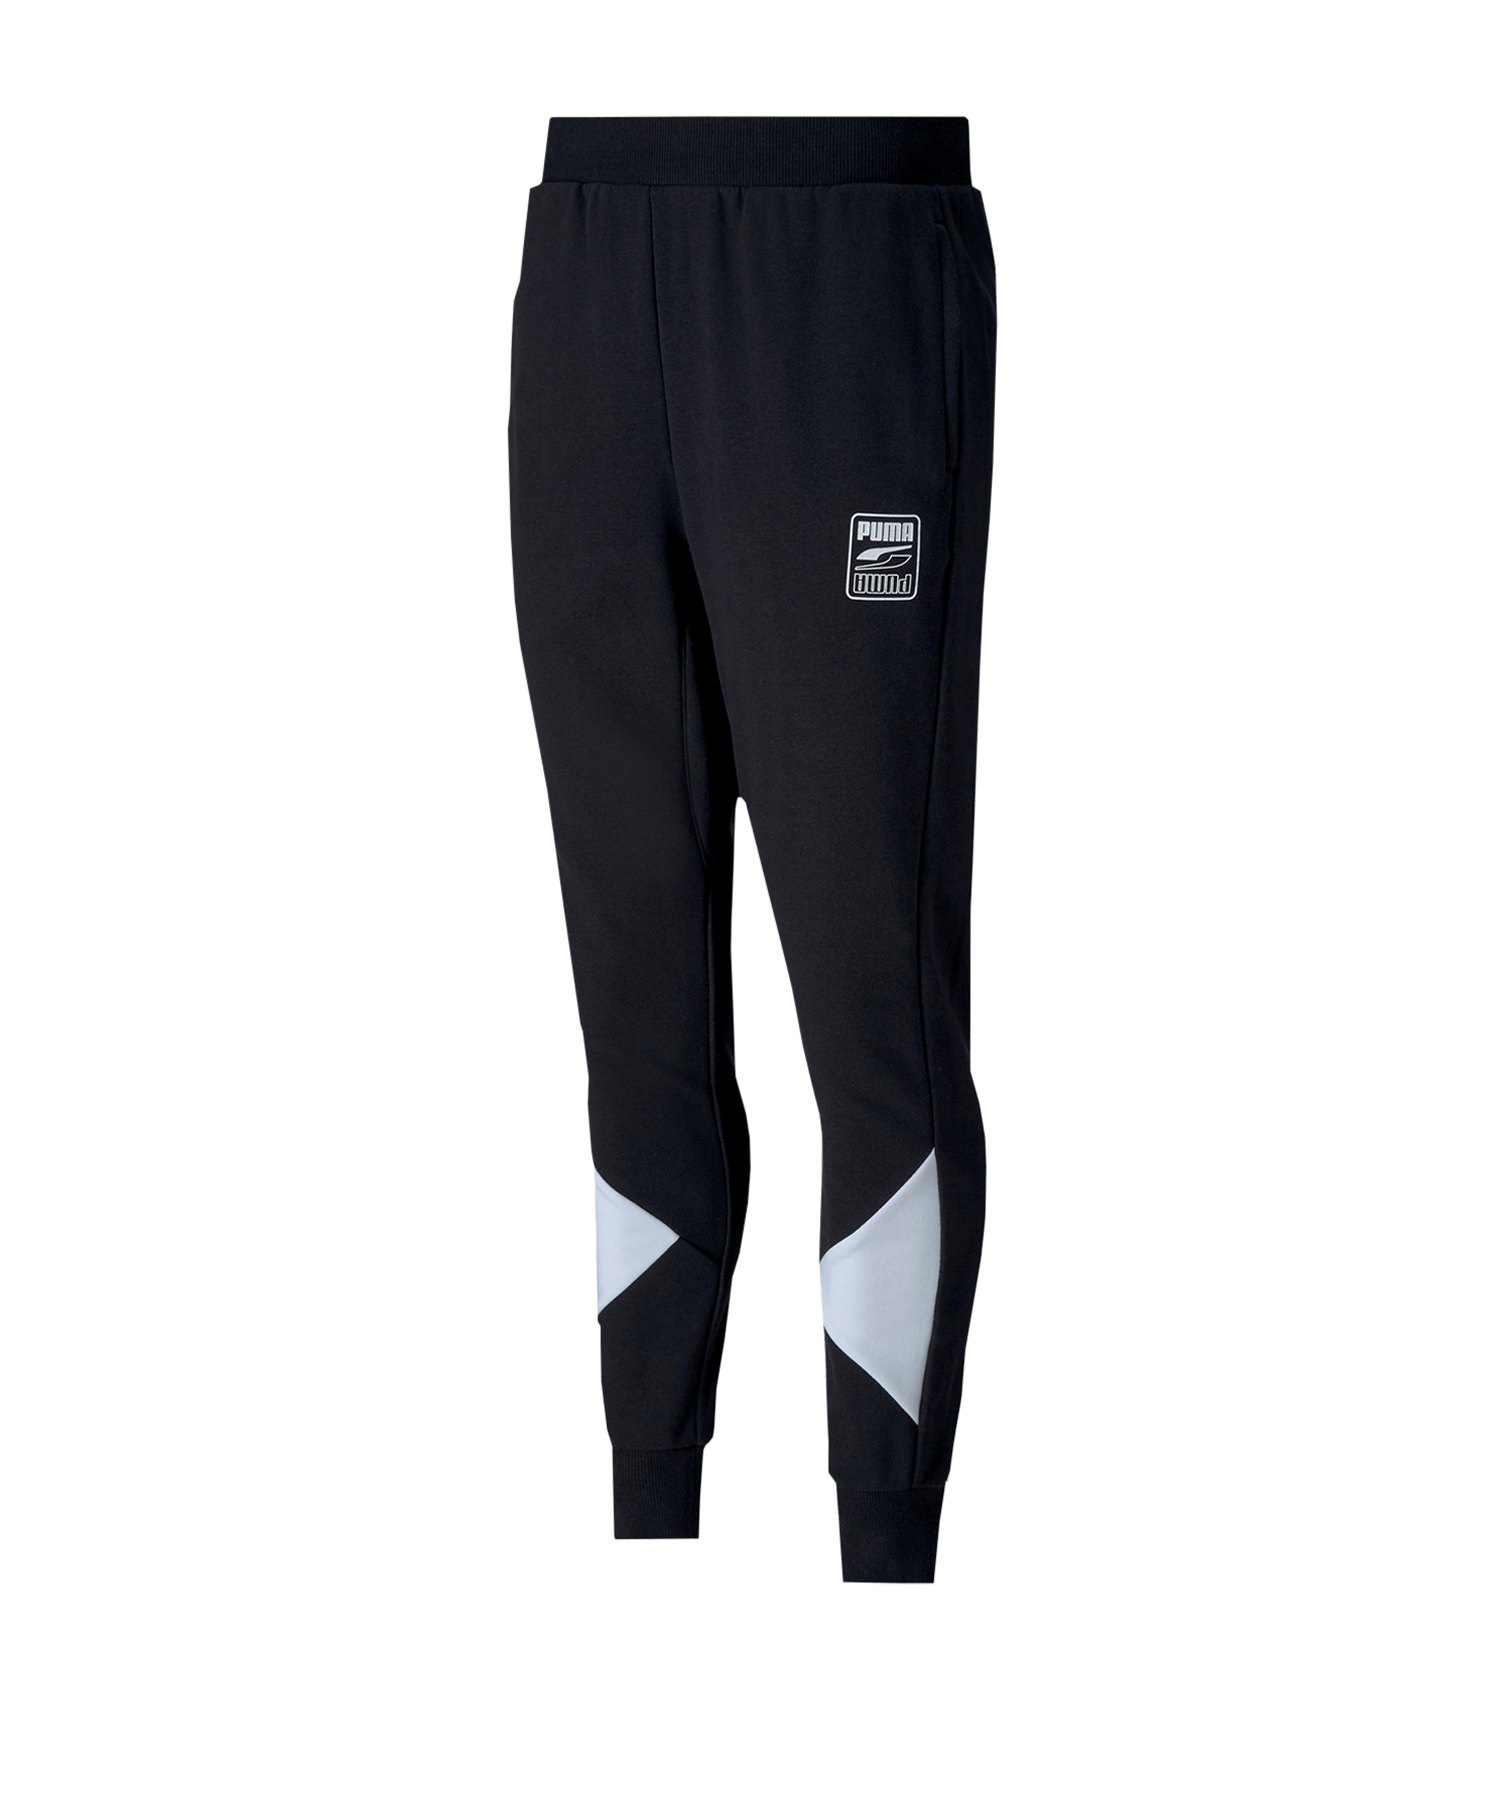 PUMA Rebel Pants Blcok TR cl Jogginghose F01 - schwarz